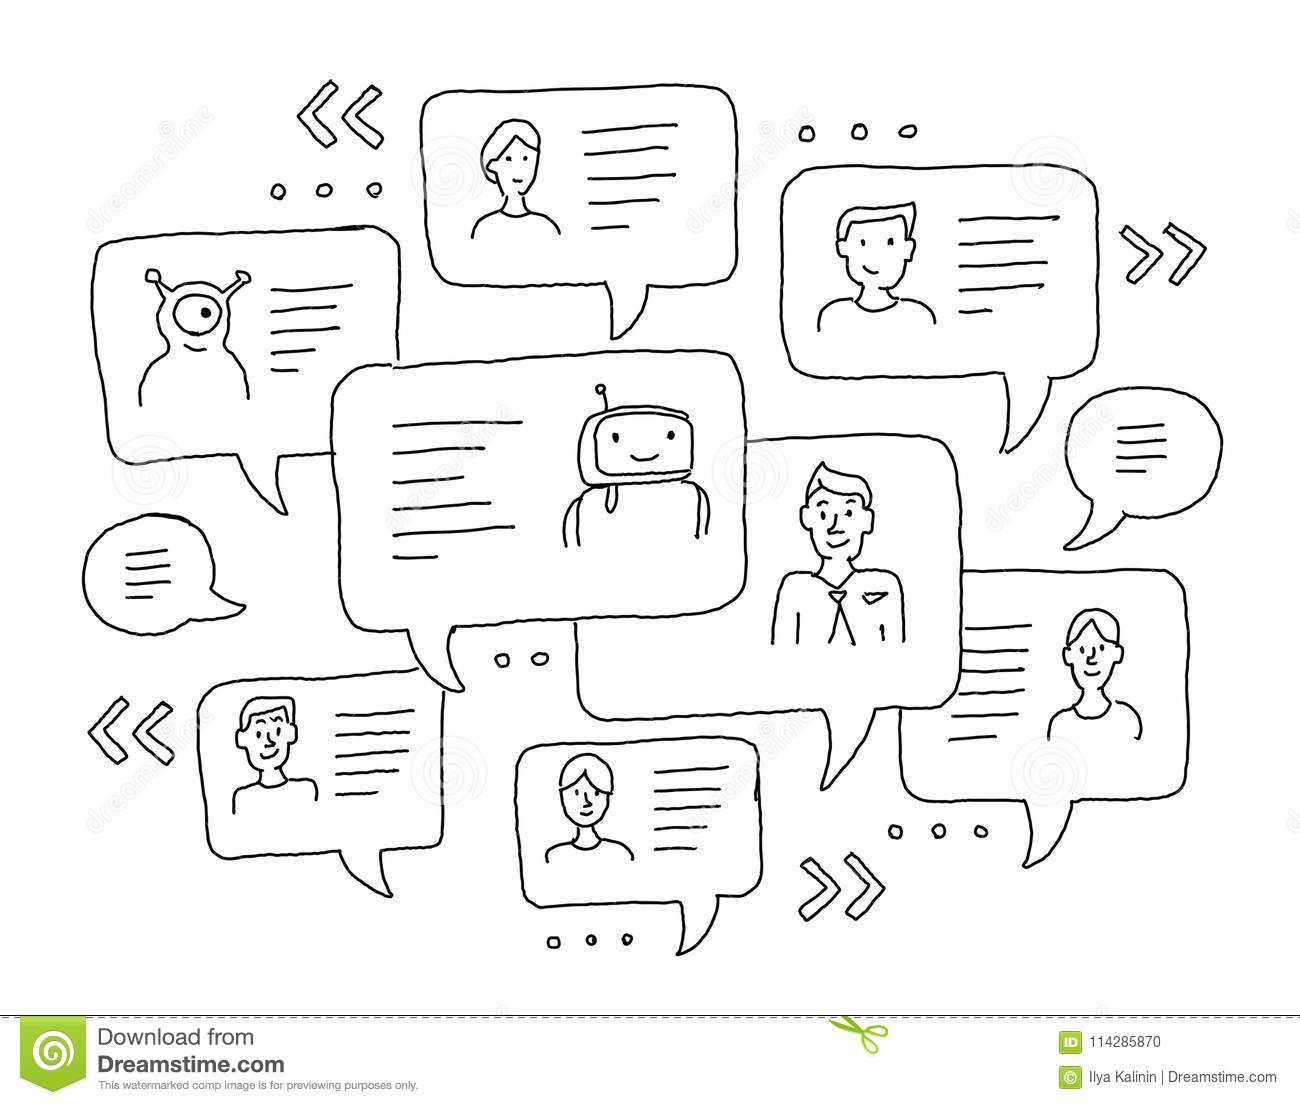 Chat messages internet communication. Sketch freehand drawing. Windows with messages. Messenger, correspondence